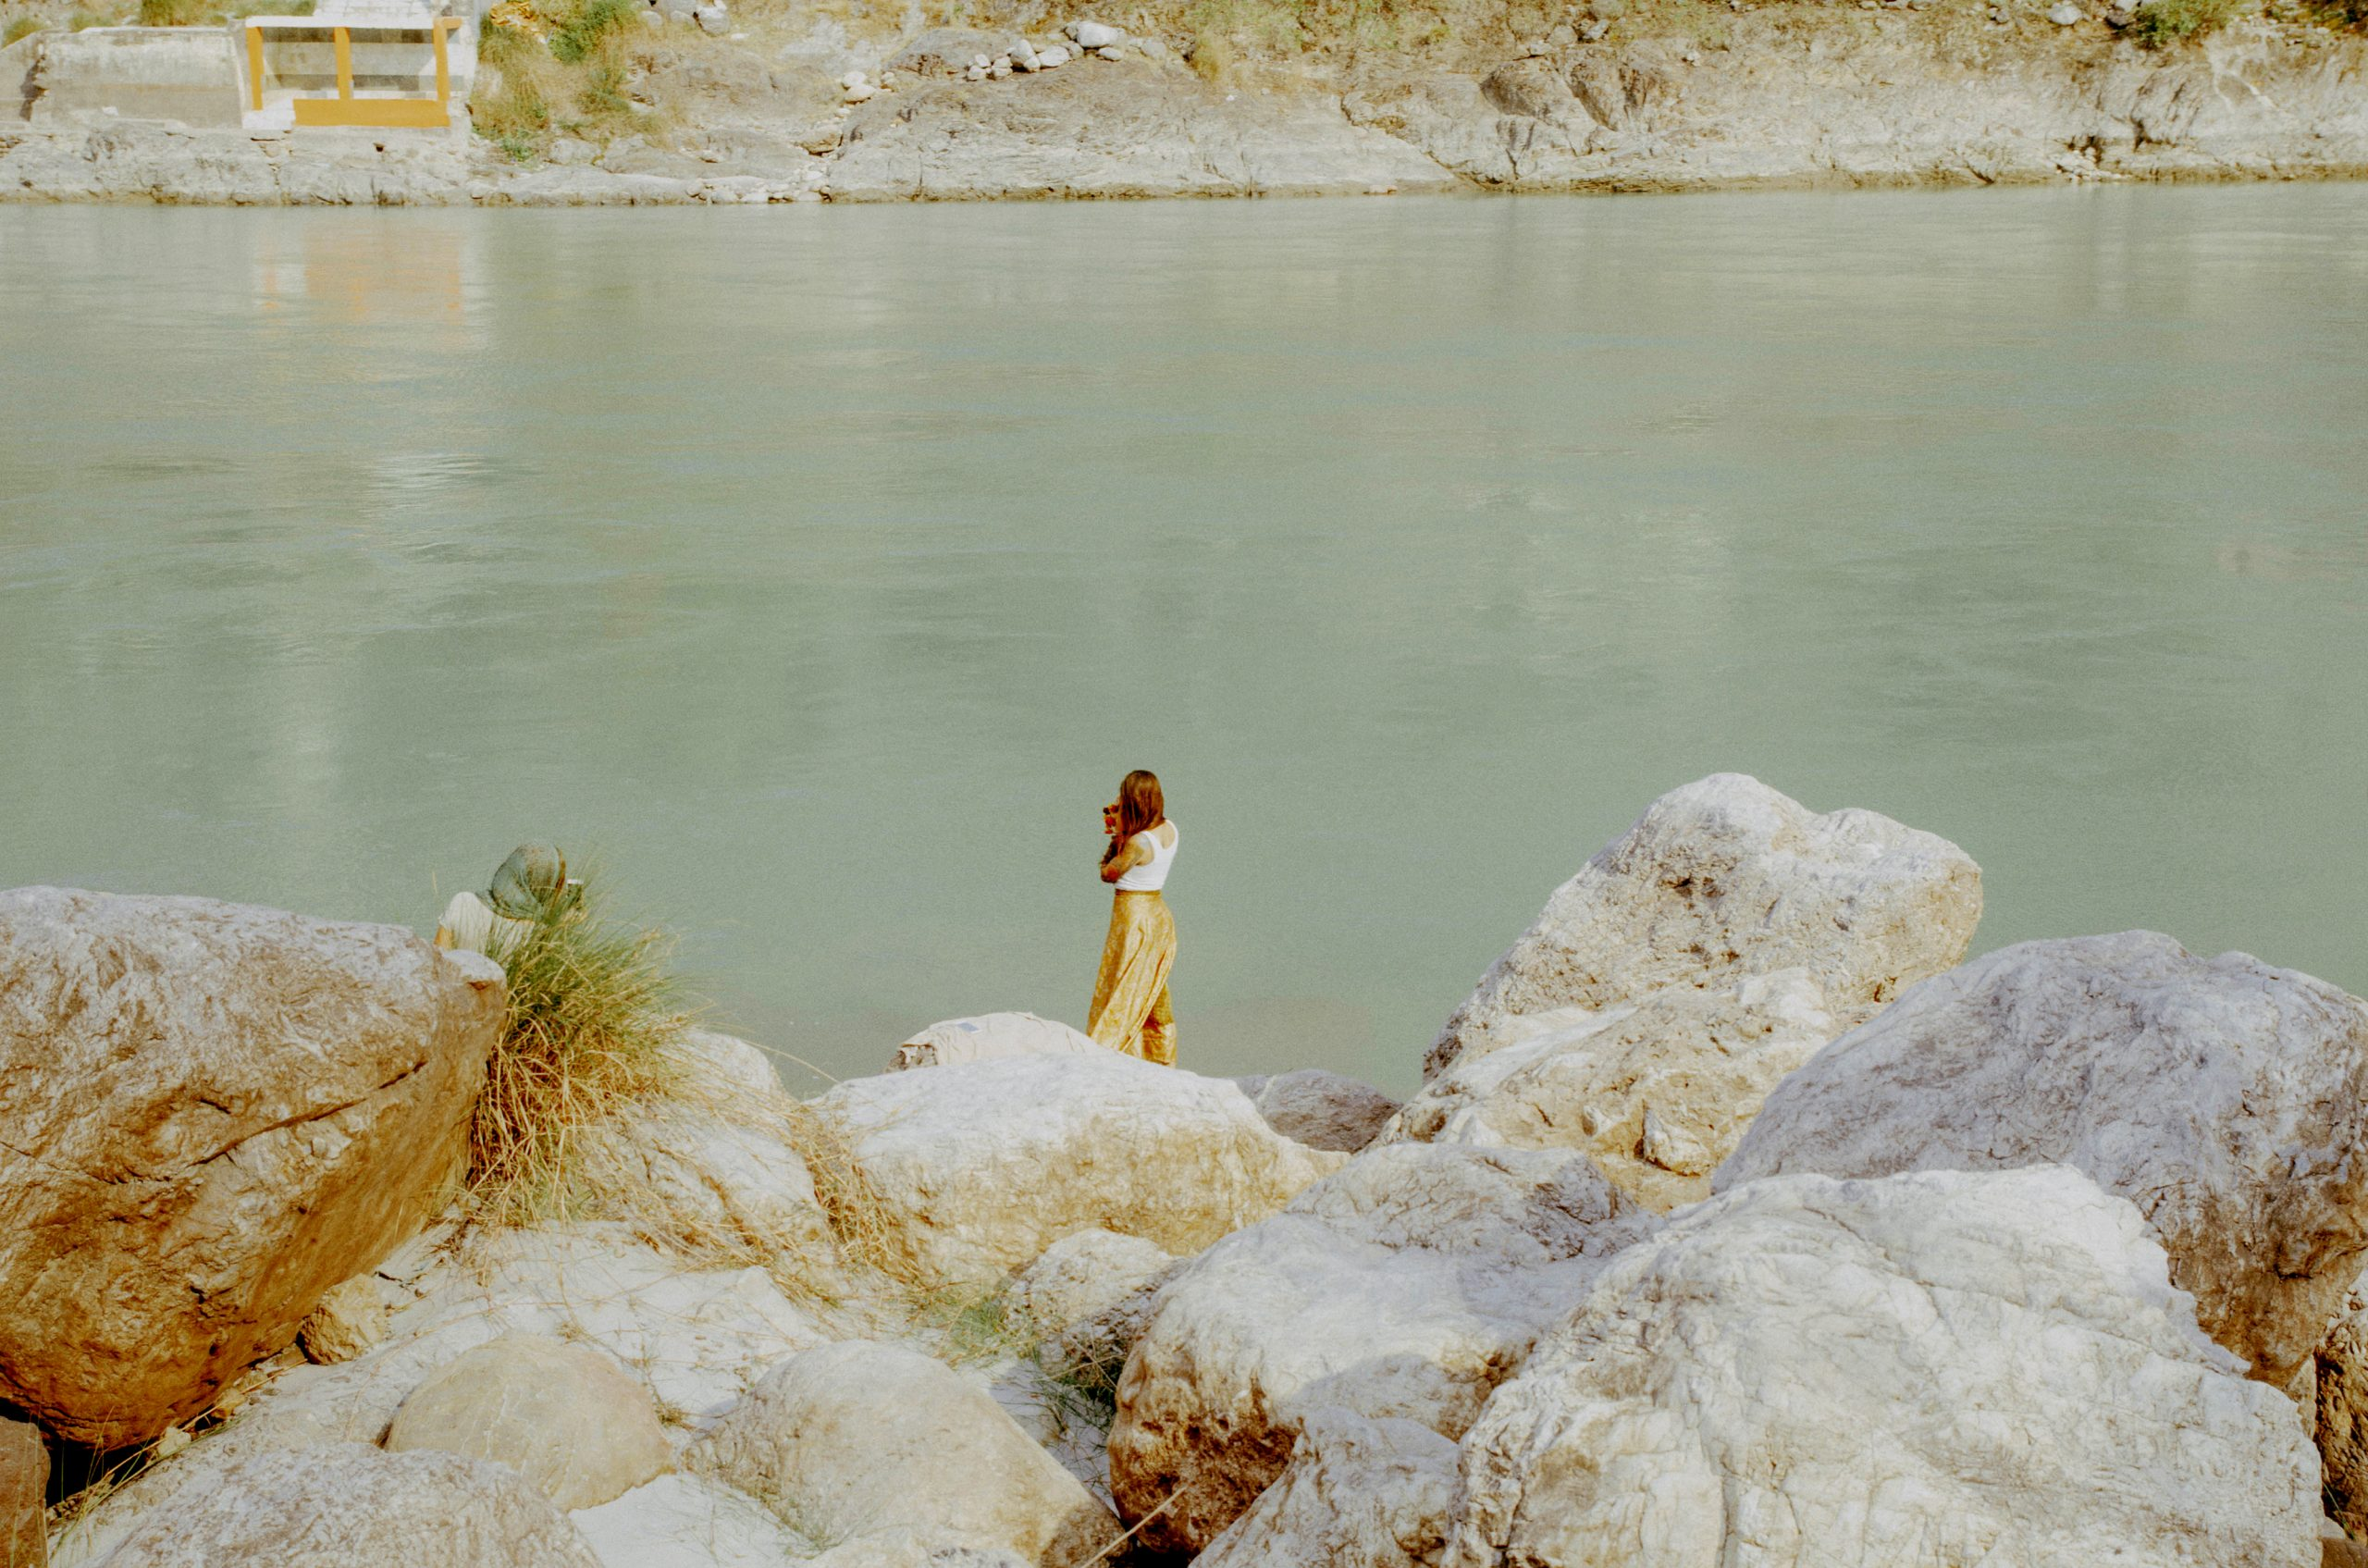 From Postcards from Rishikesh © Debmalya Choudhuri